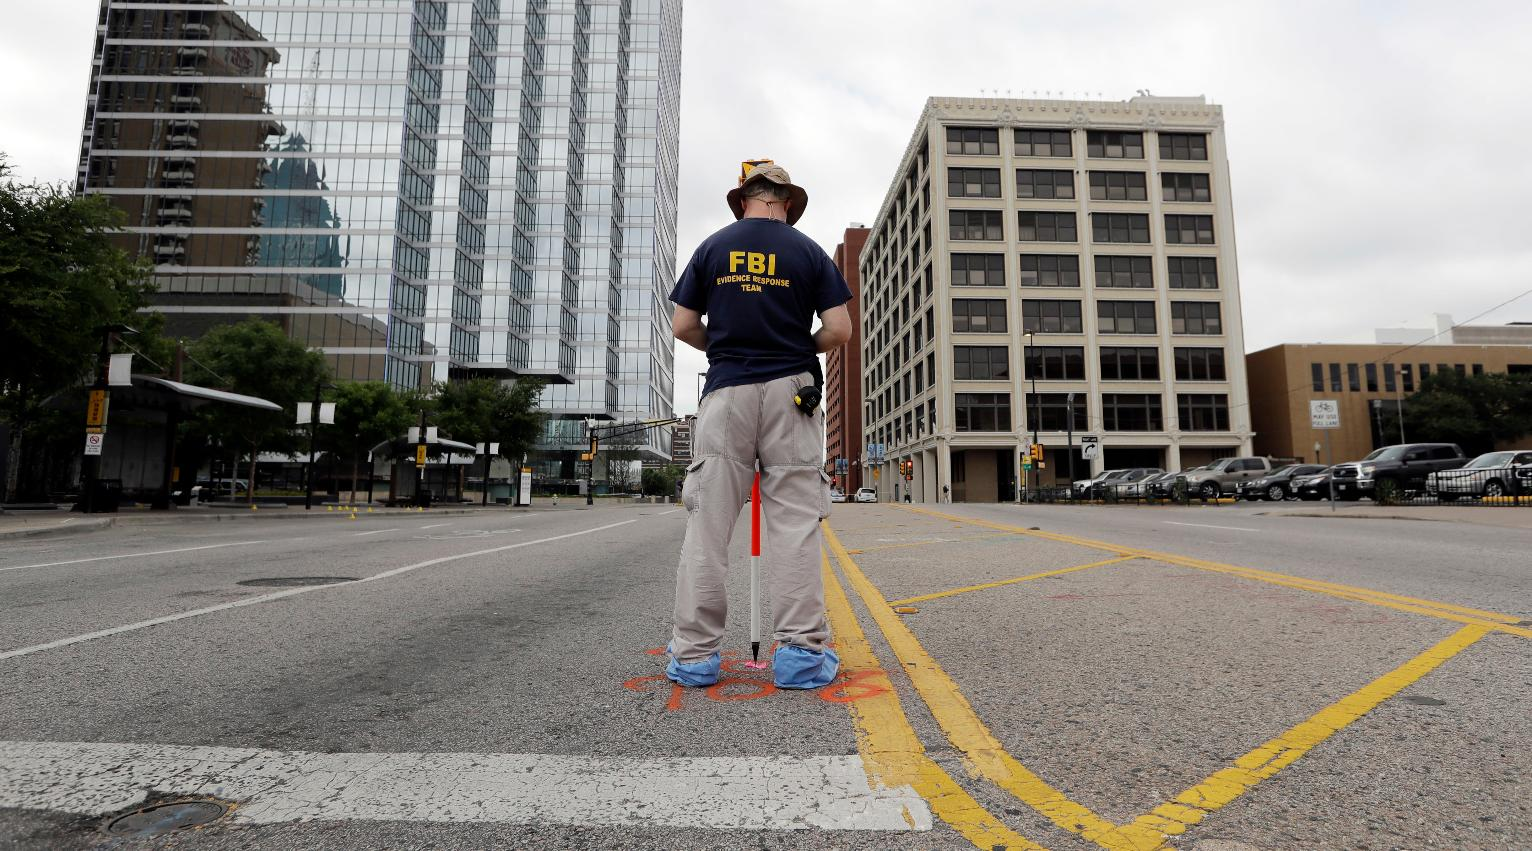 The Latest: Dallas police say nothing found in garage search